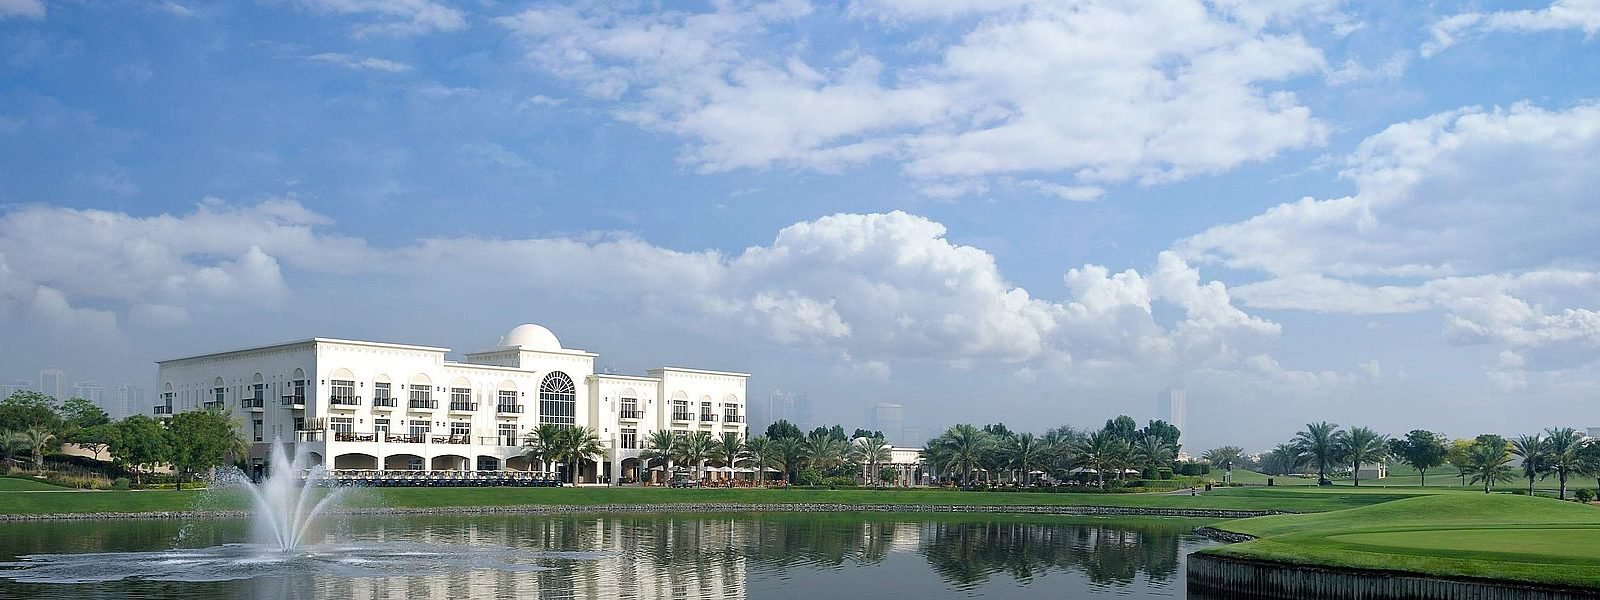 Dubai – The Montgomerie